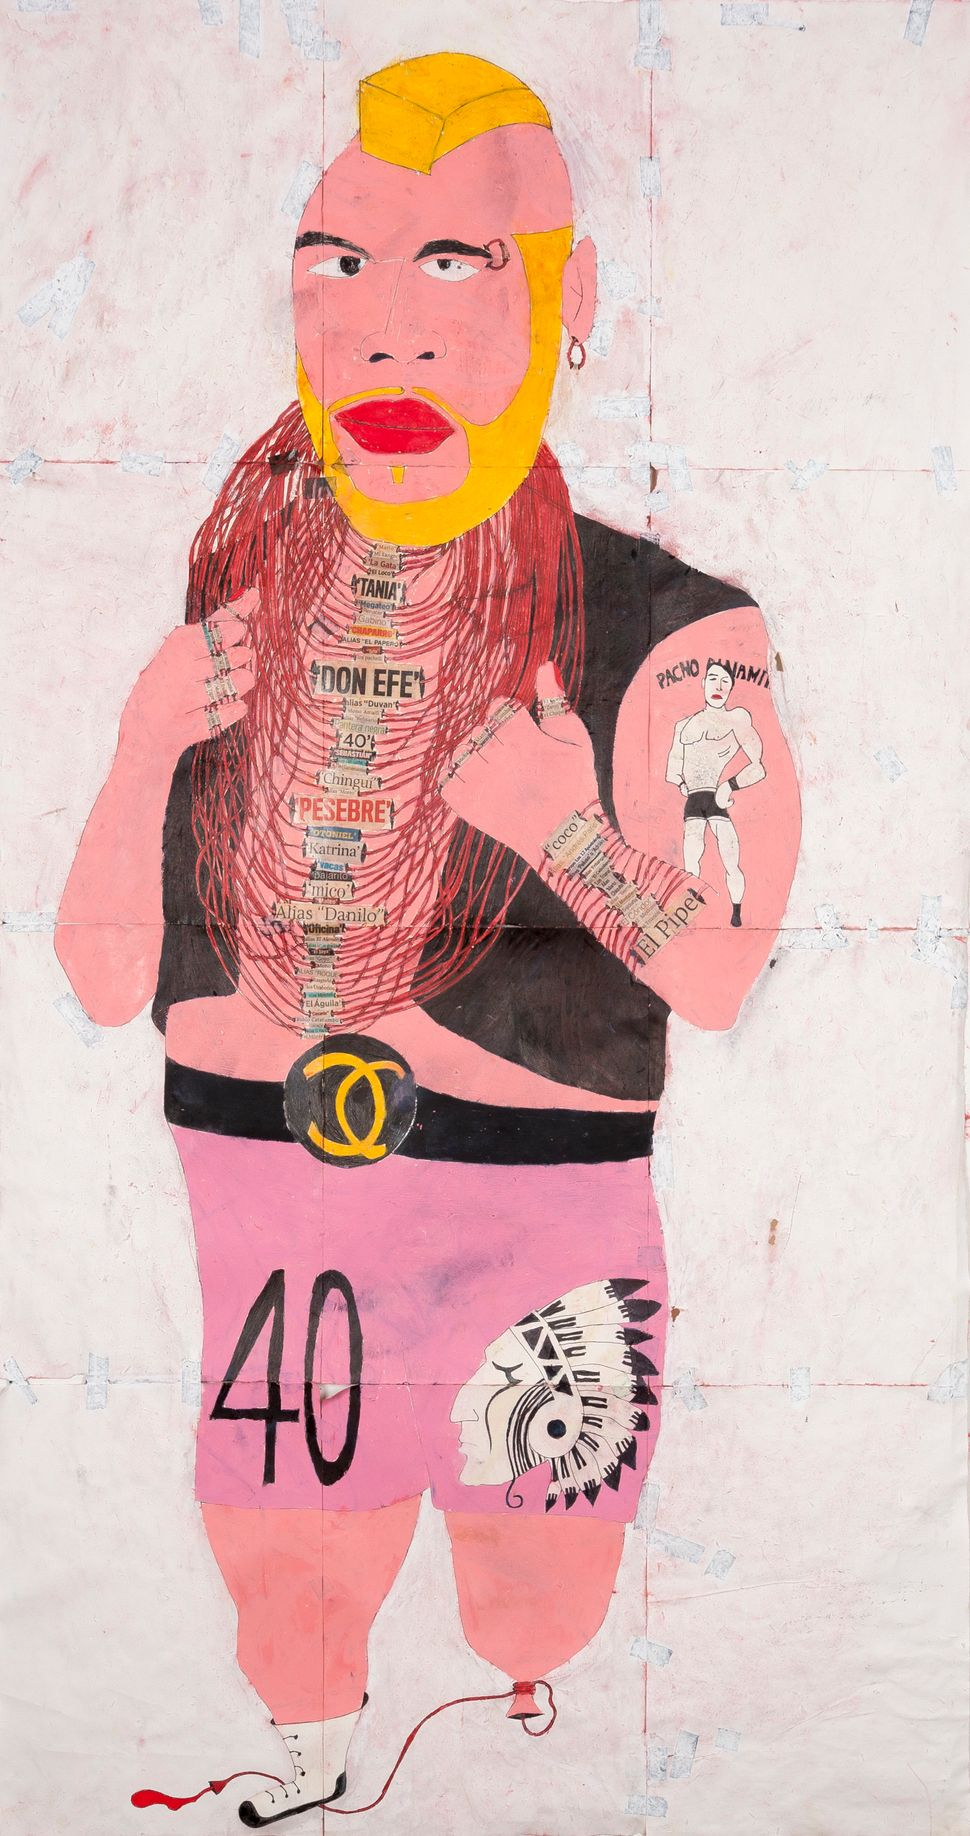 'Don Mario', 2014 Ink, water-soluble wax pastel, tape, newspaper clippings and saliva on paper 46 1/2 x 24 3/4 inches (118.1